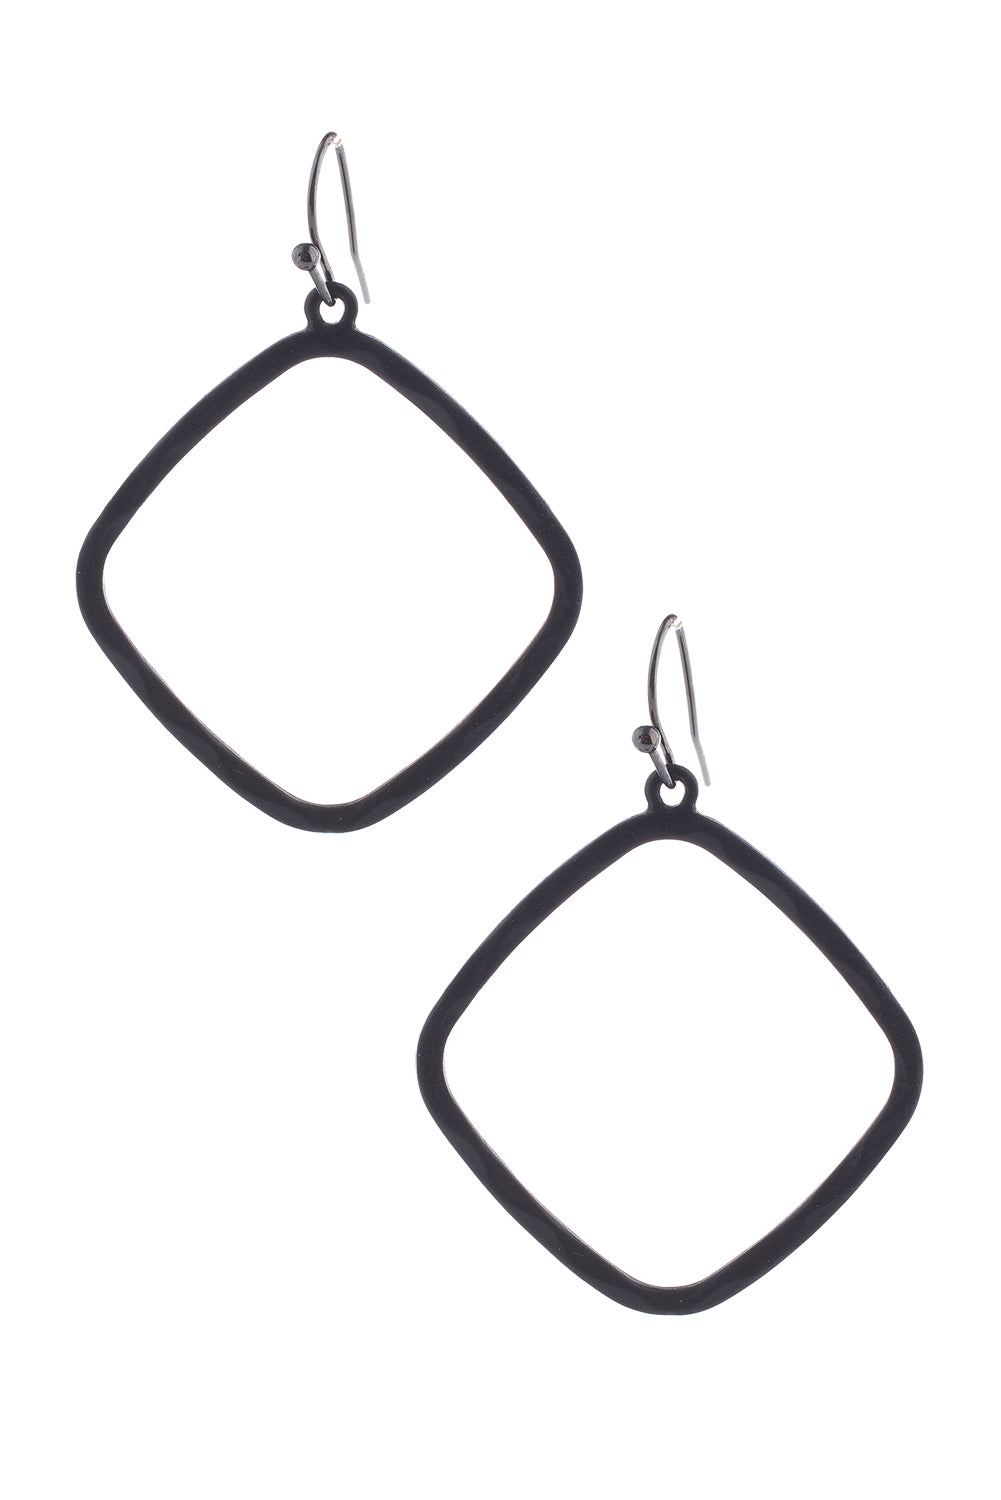 Type 4 Notable Frame Earrings